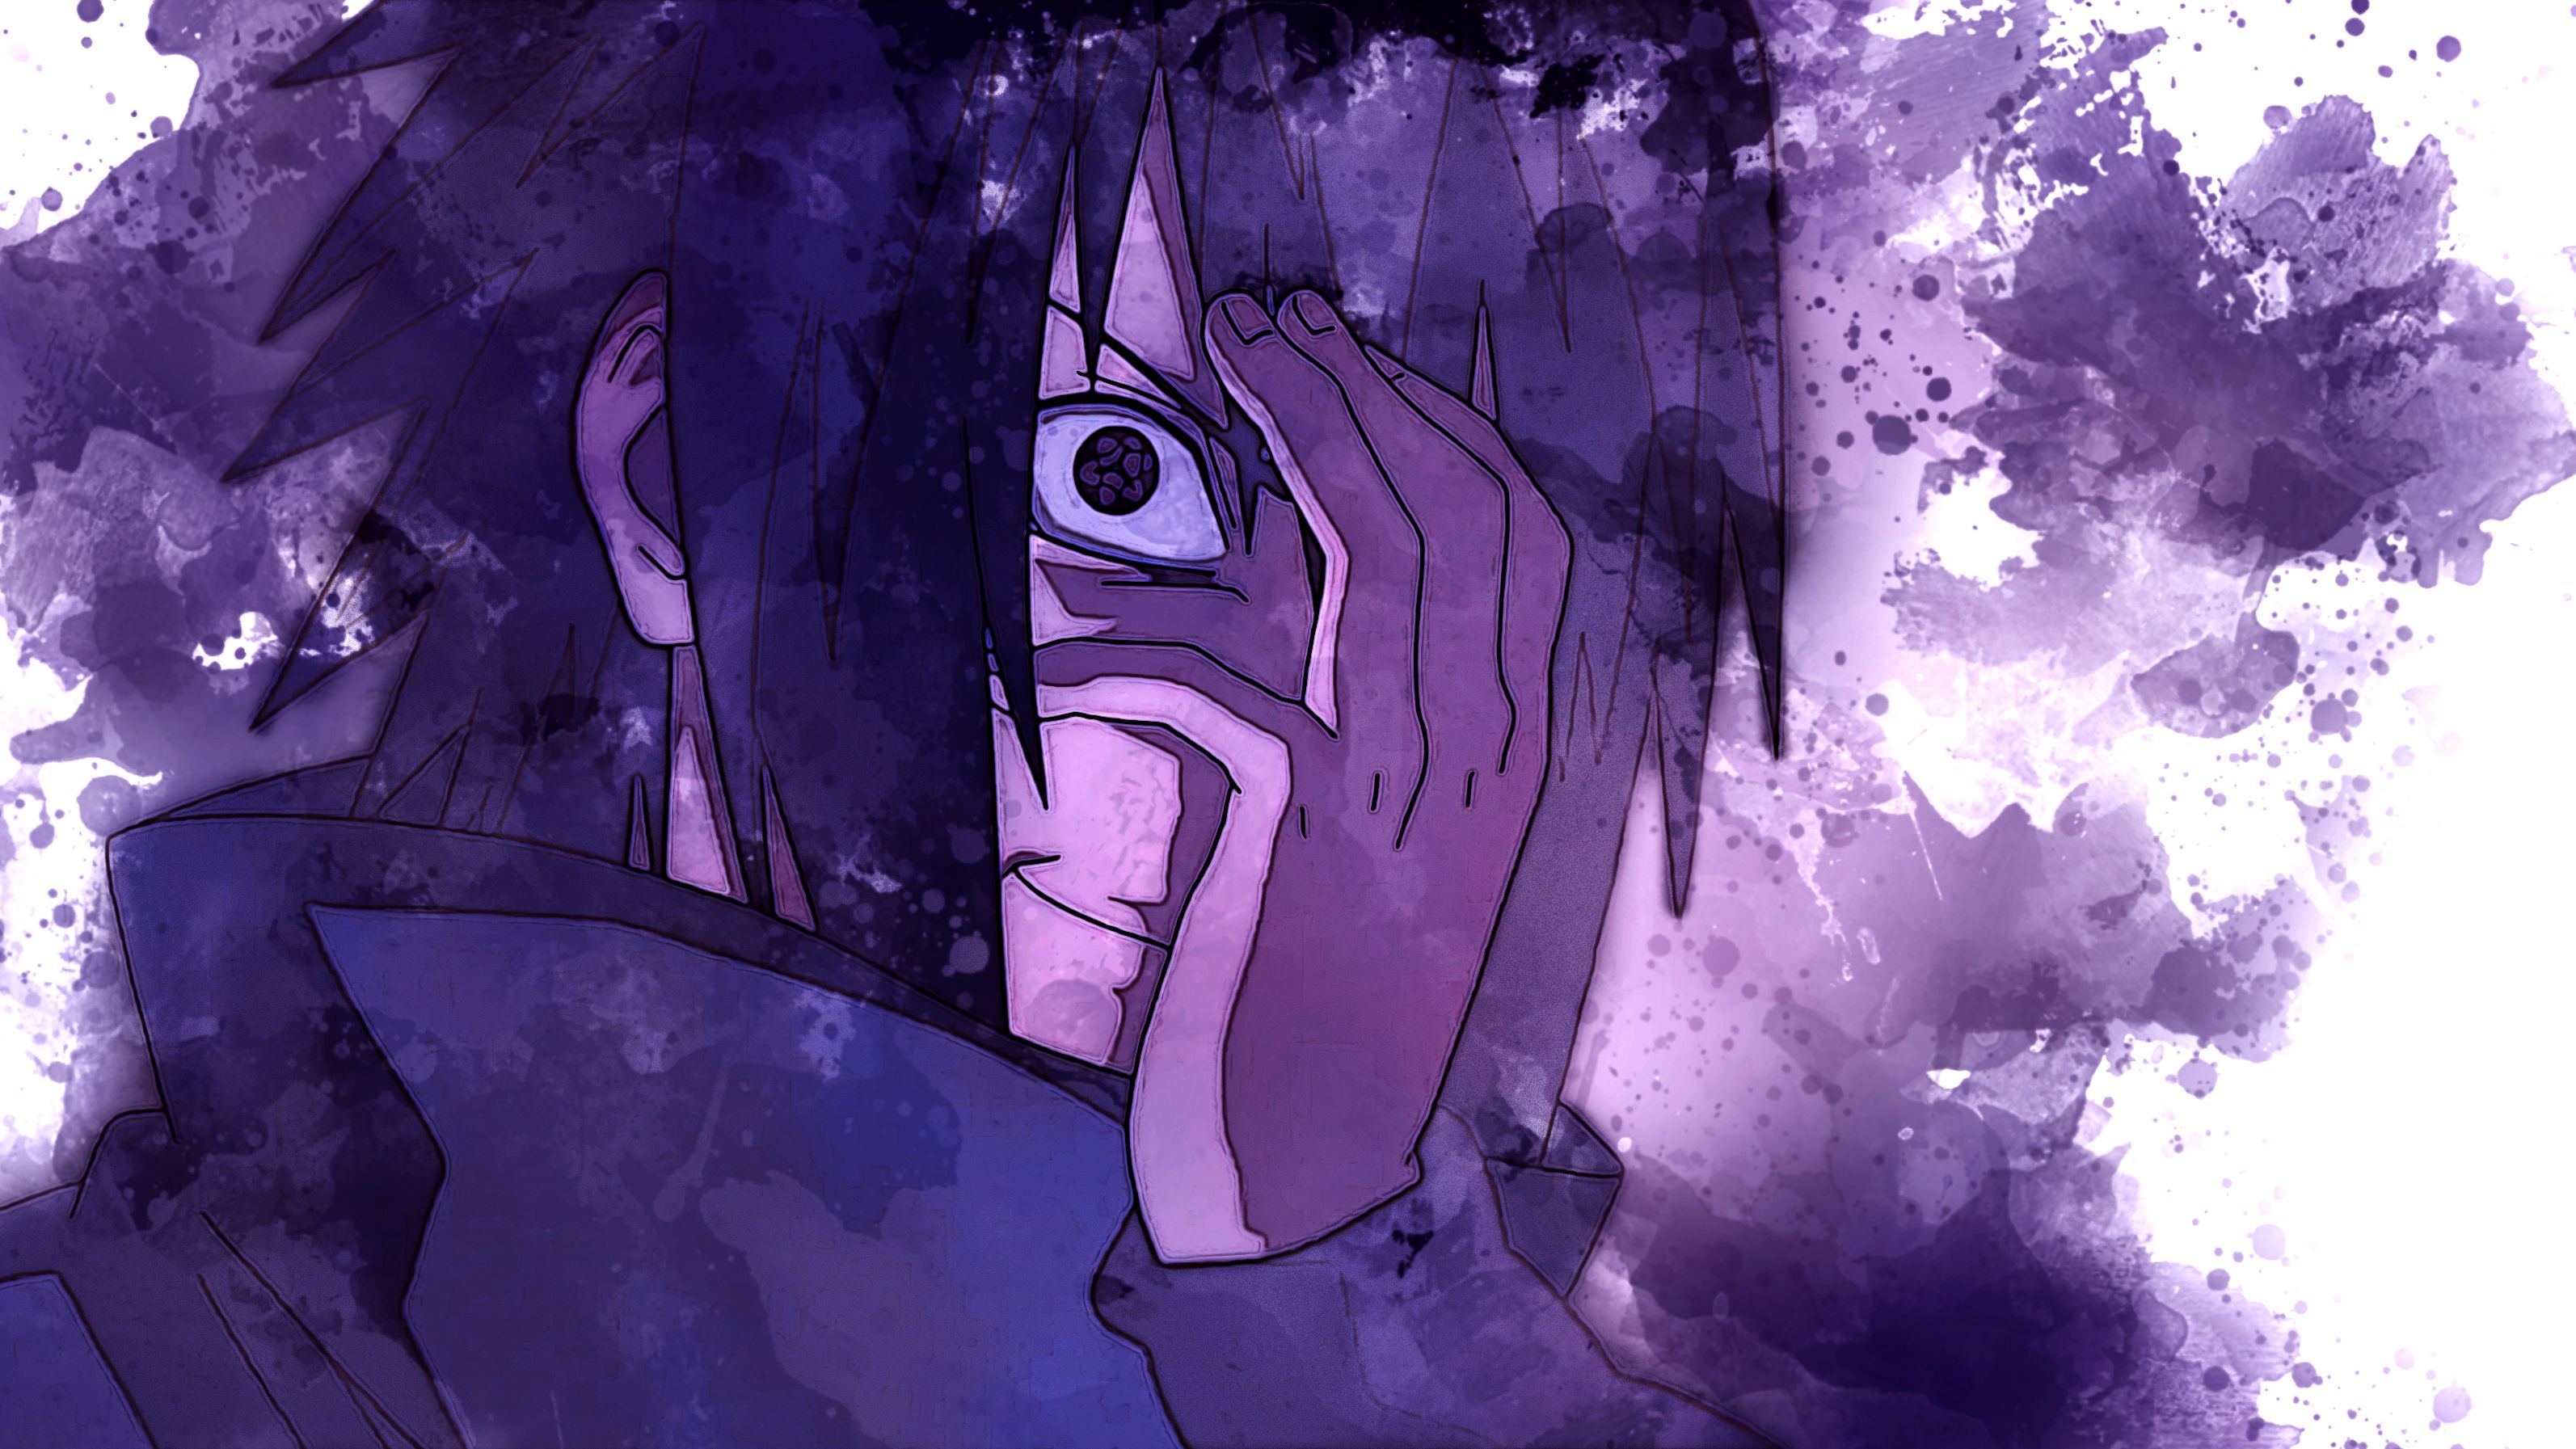 Sasuke Uchiha Mangekyou Sharingan Wallpapers - Top Free ...